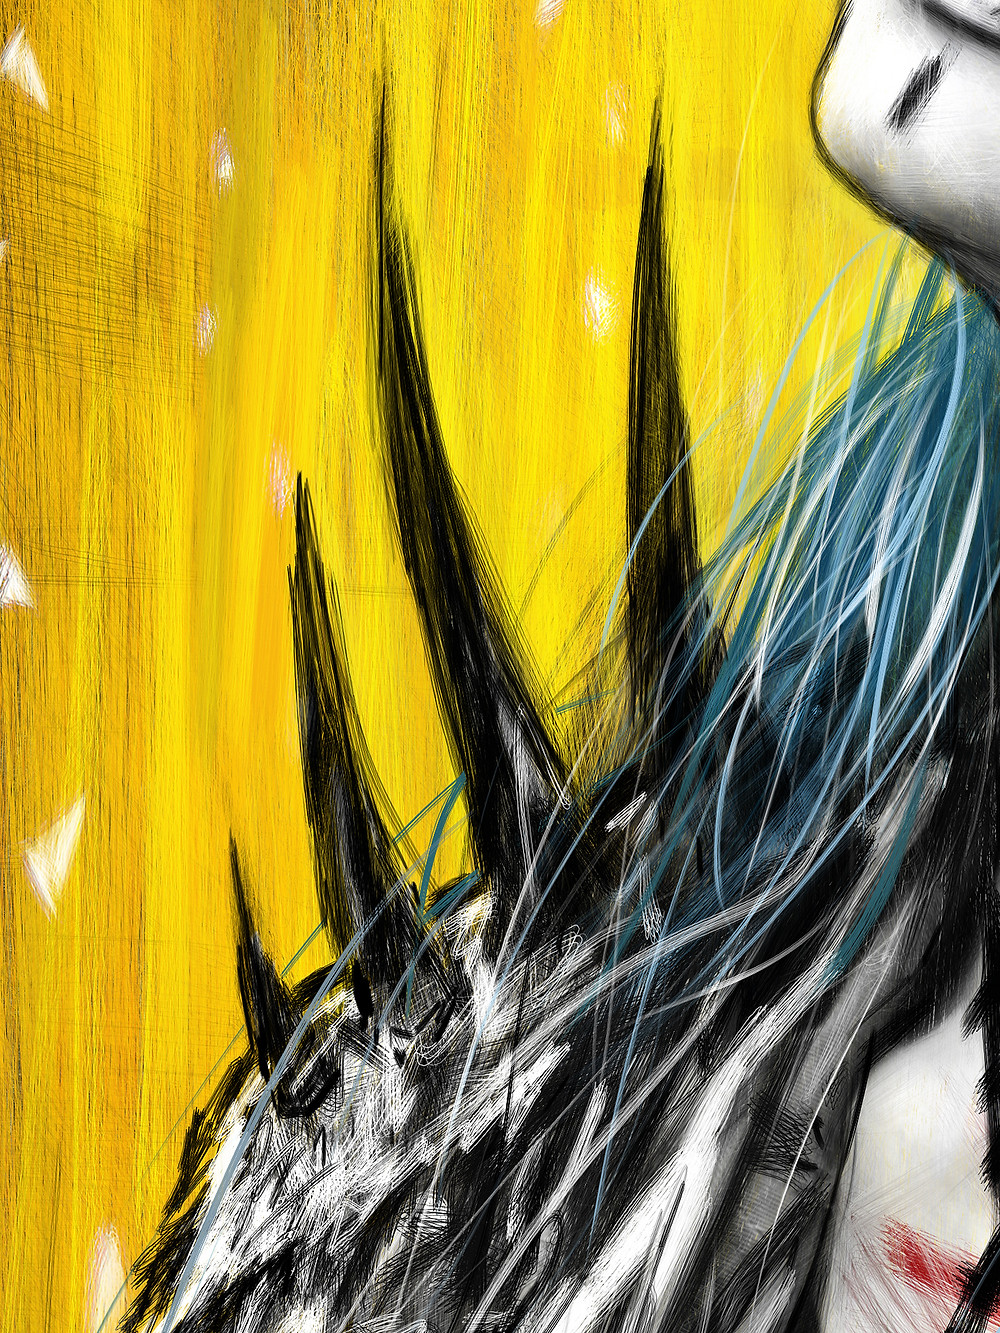 Digital Art Detail